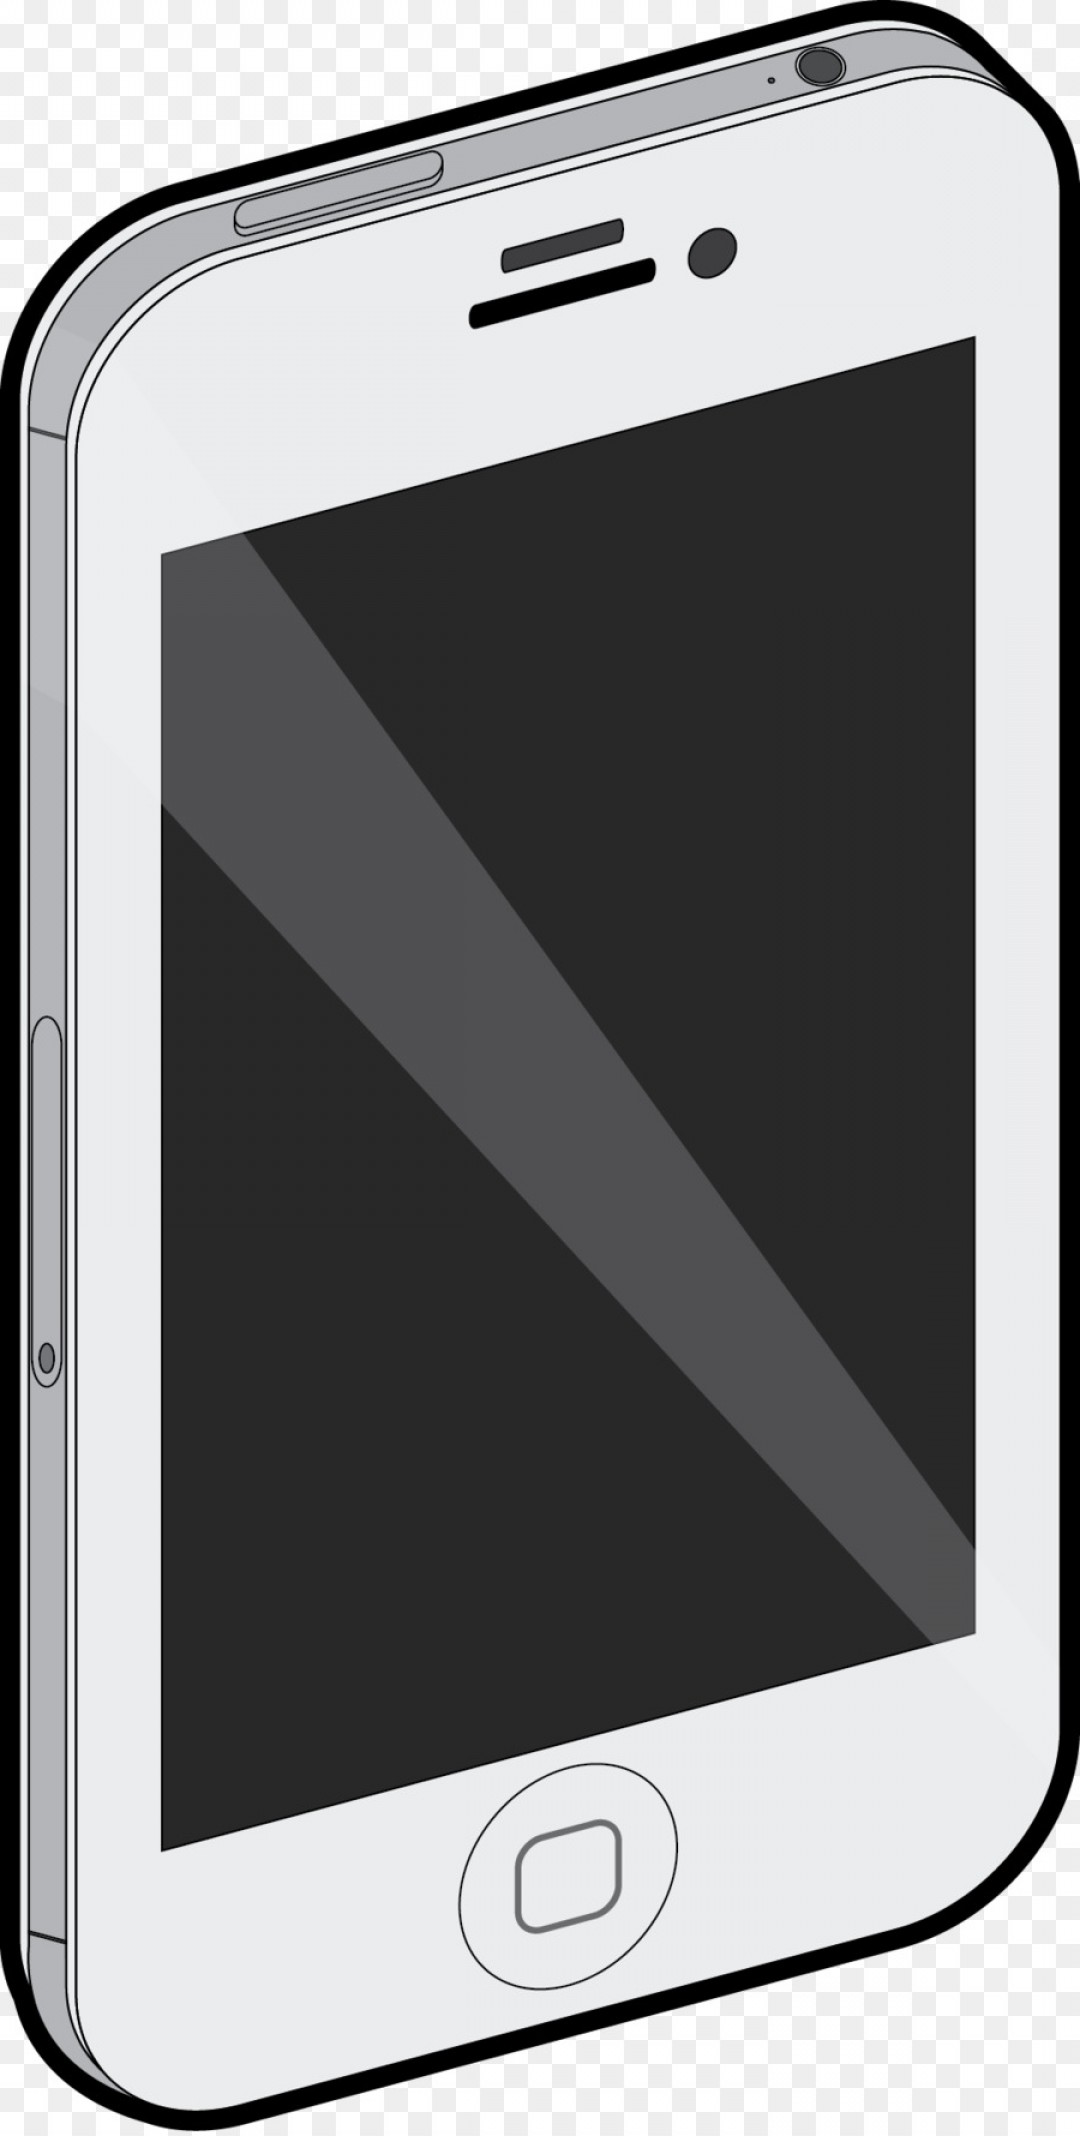 White IPhone Vector Png: Png Mobile Phones Handheld Devices Portable Communicat